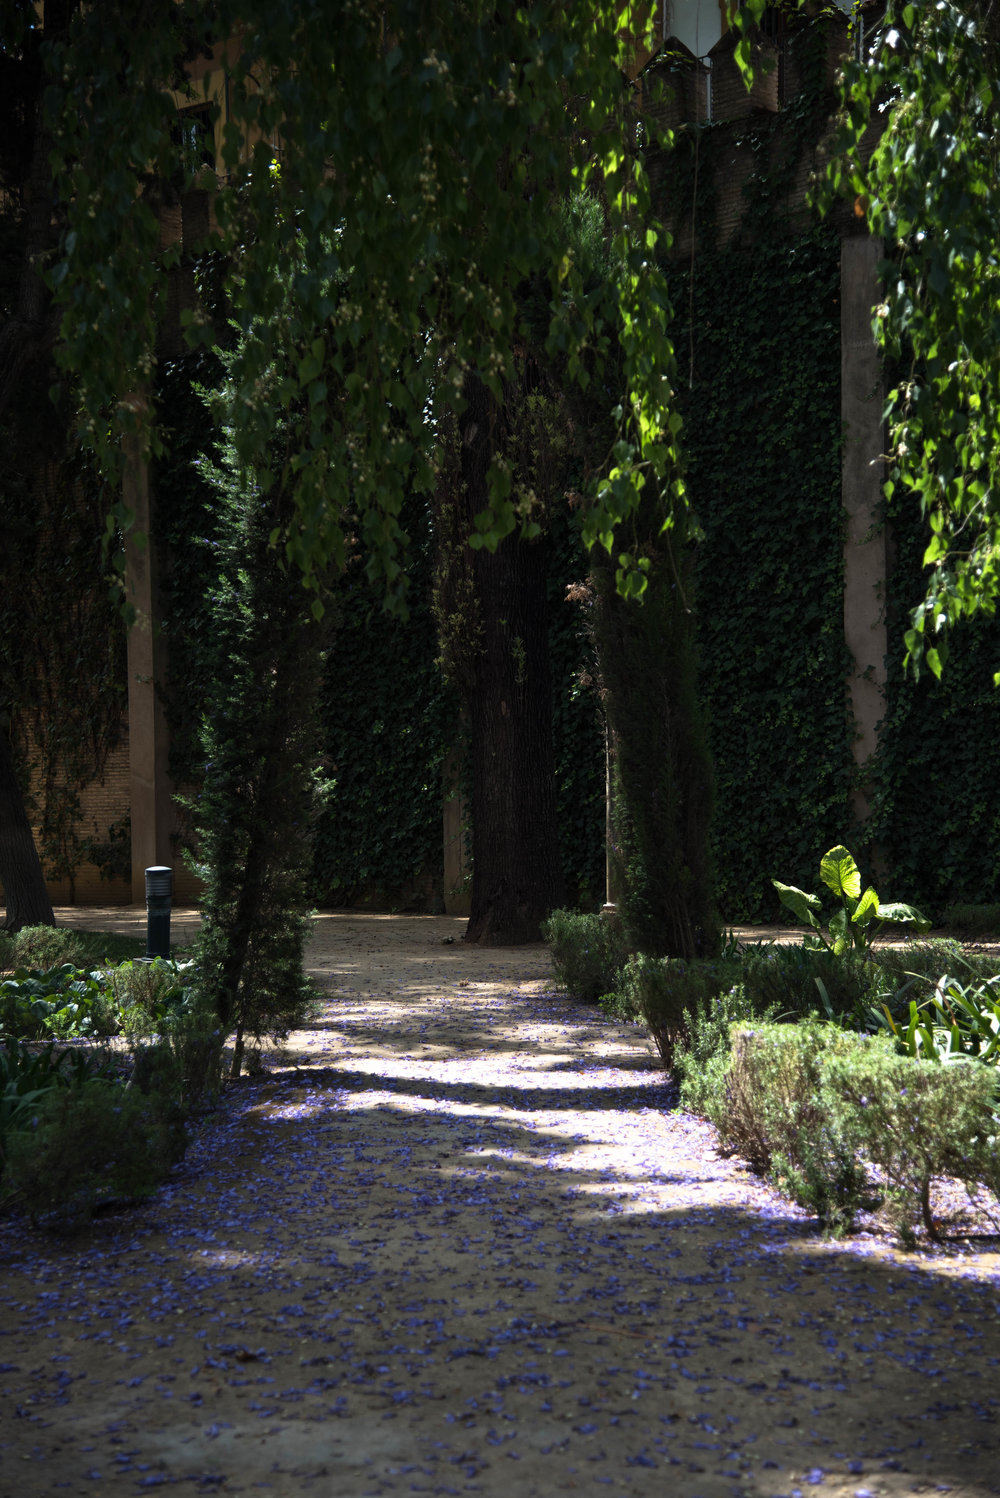 ROSE & IVY Journal Garden Dreamer | The Alcázar  & Gardens Seville, Spain